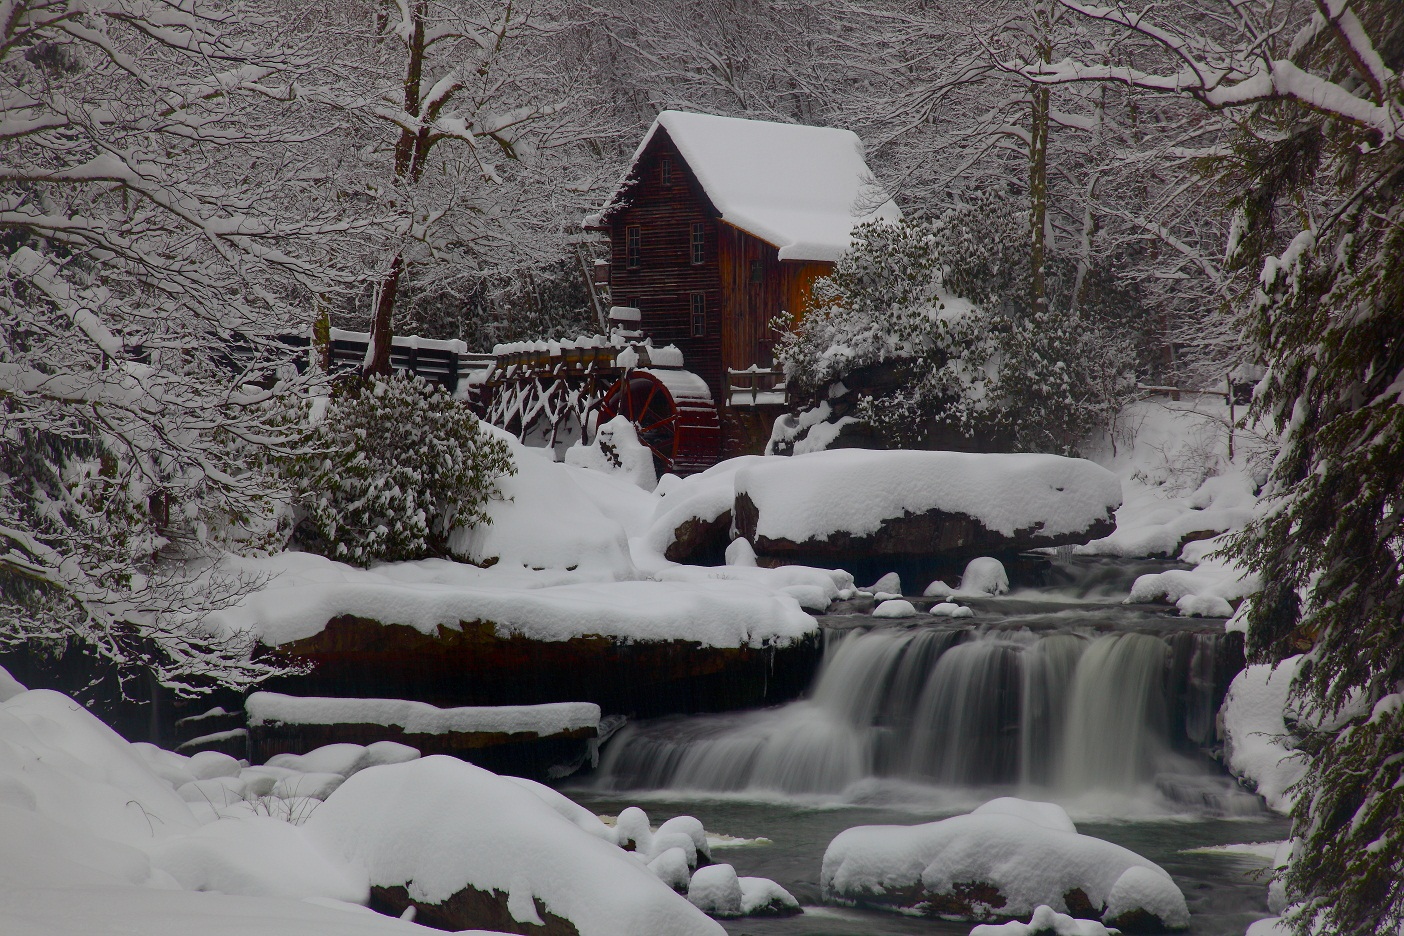 Multonomah Falls Wallpaper Desktop West Virginia Gristmill Waterfall Winter Snow By